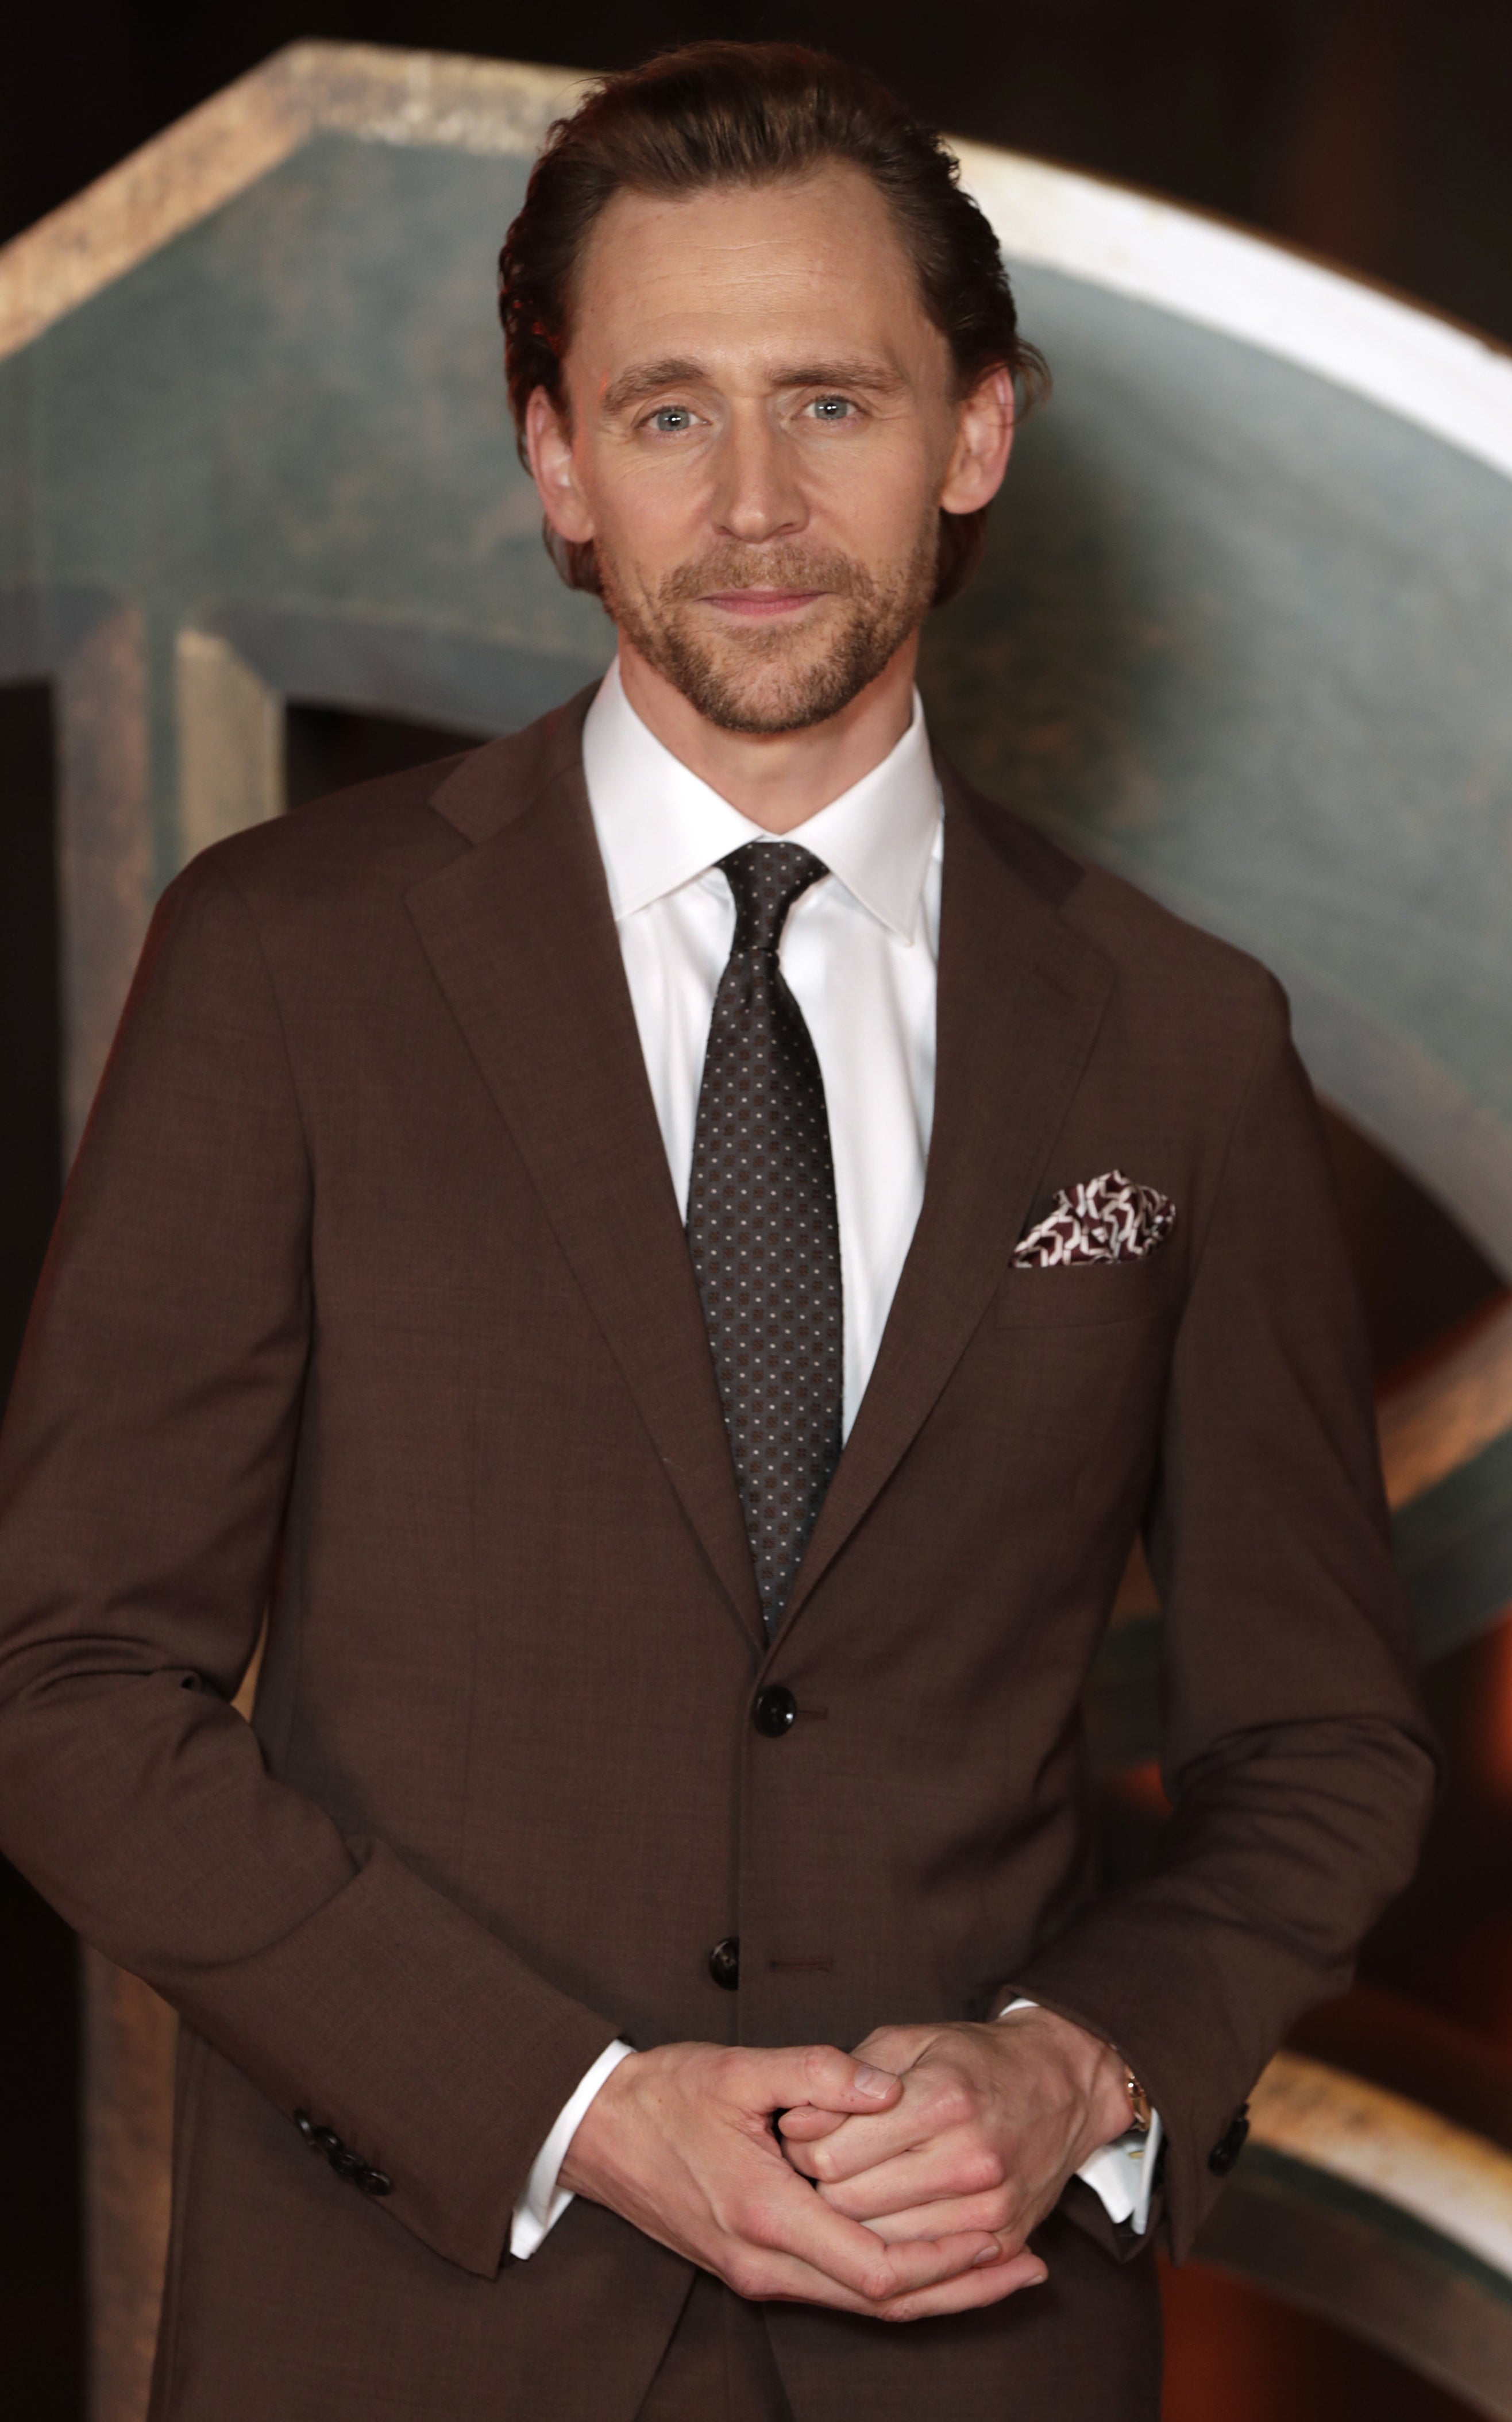 Tom wearing a suit at a red carpet event